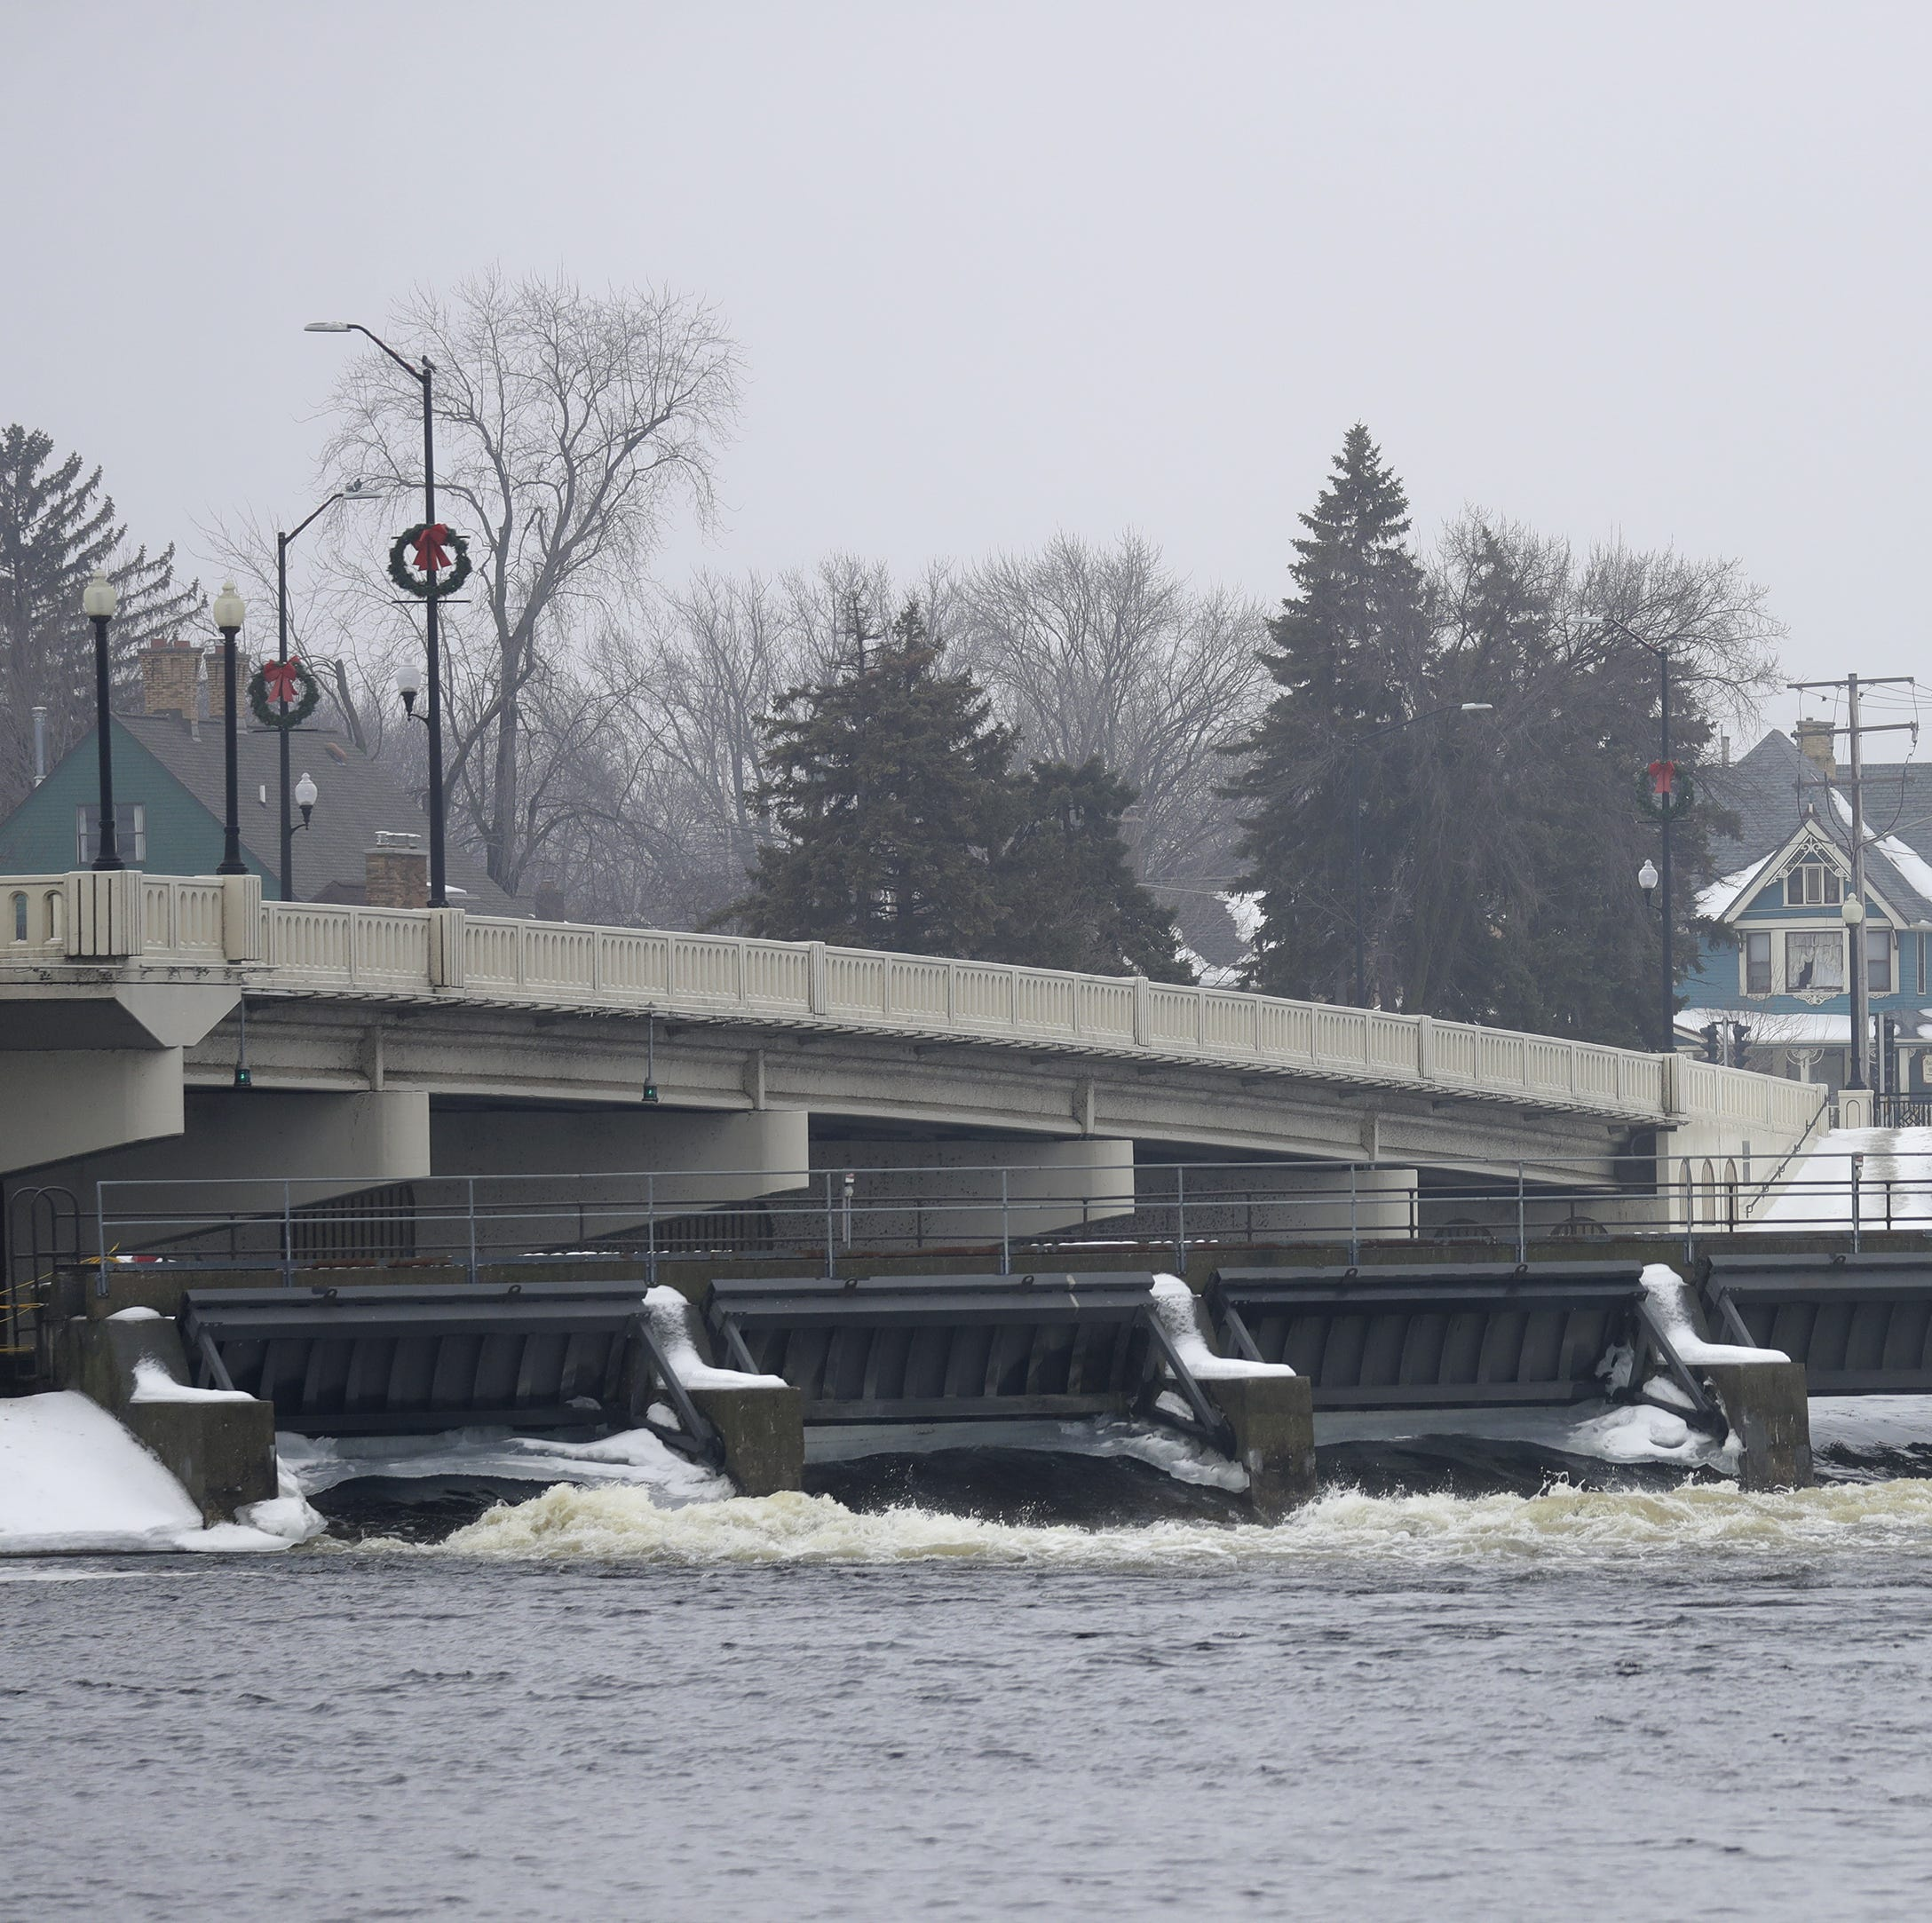 Dams on Lake Winnebago don't influence flooding upstream on the Wolf River